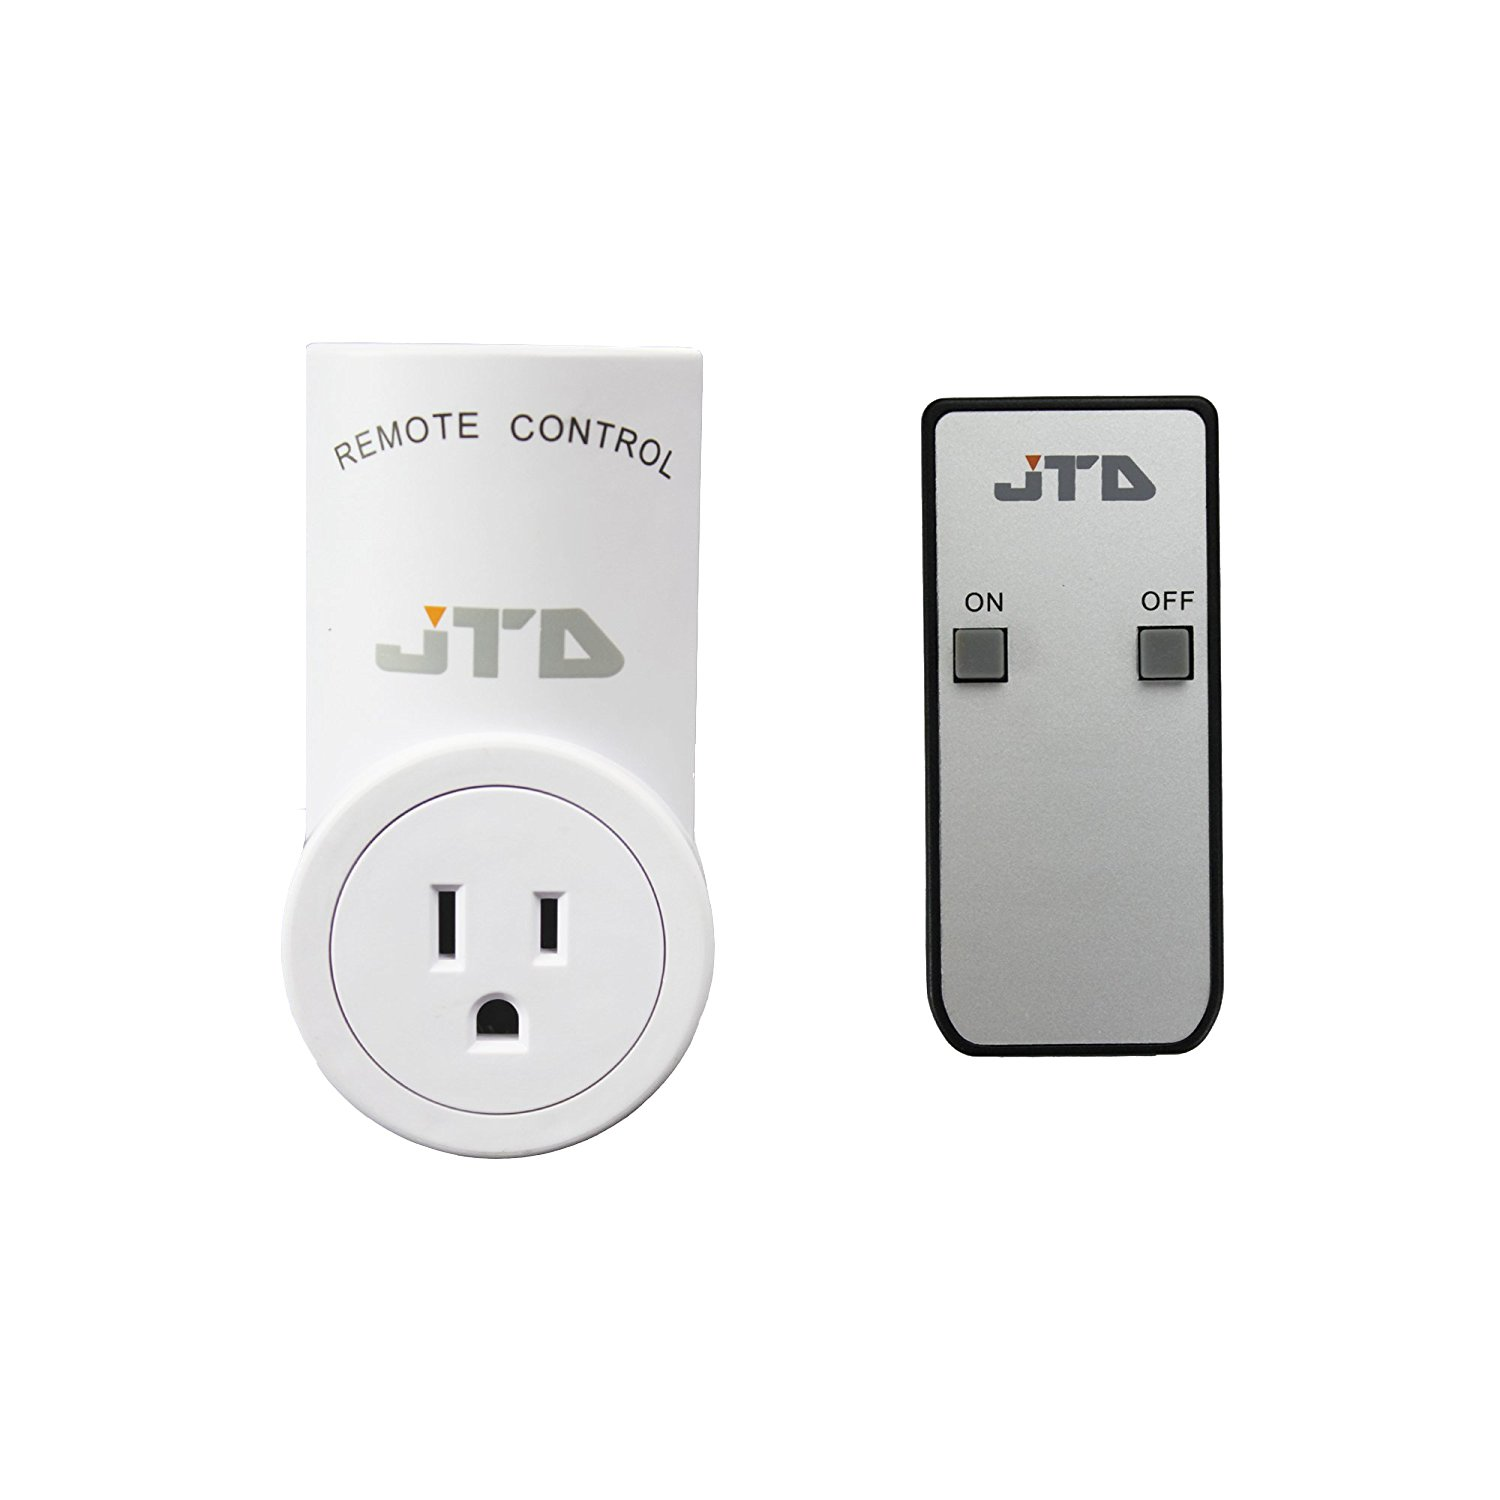 Cheap Remote Electrical Switch Find Deals About 3way Digital Wireless Control Light Lamp On Off Get Quotations Jtd 1 Pack Energy Saving Auto Programmable Outlet Plug